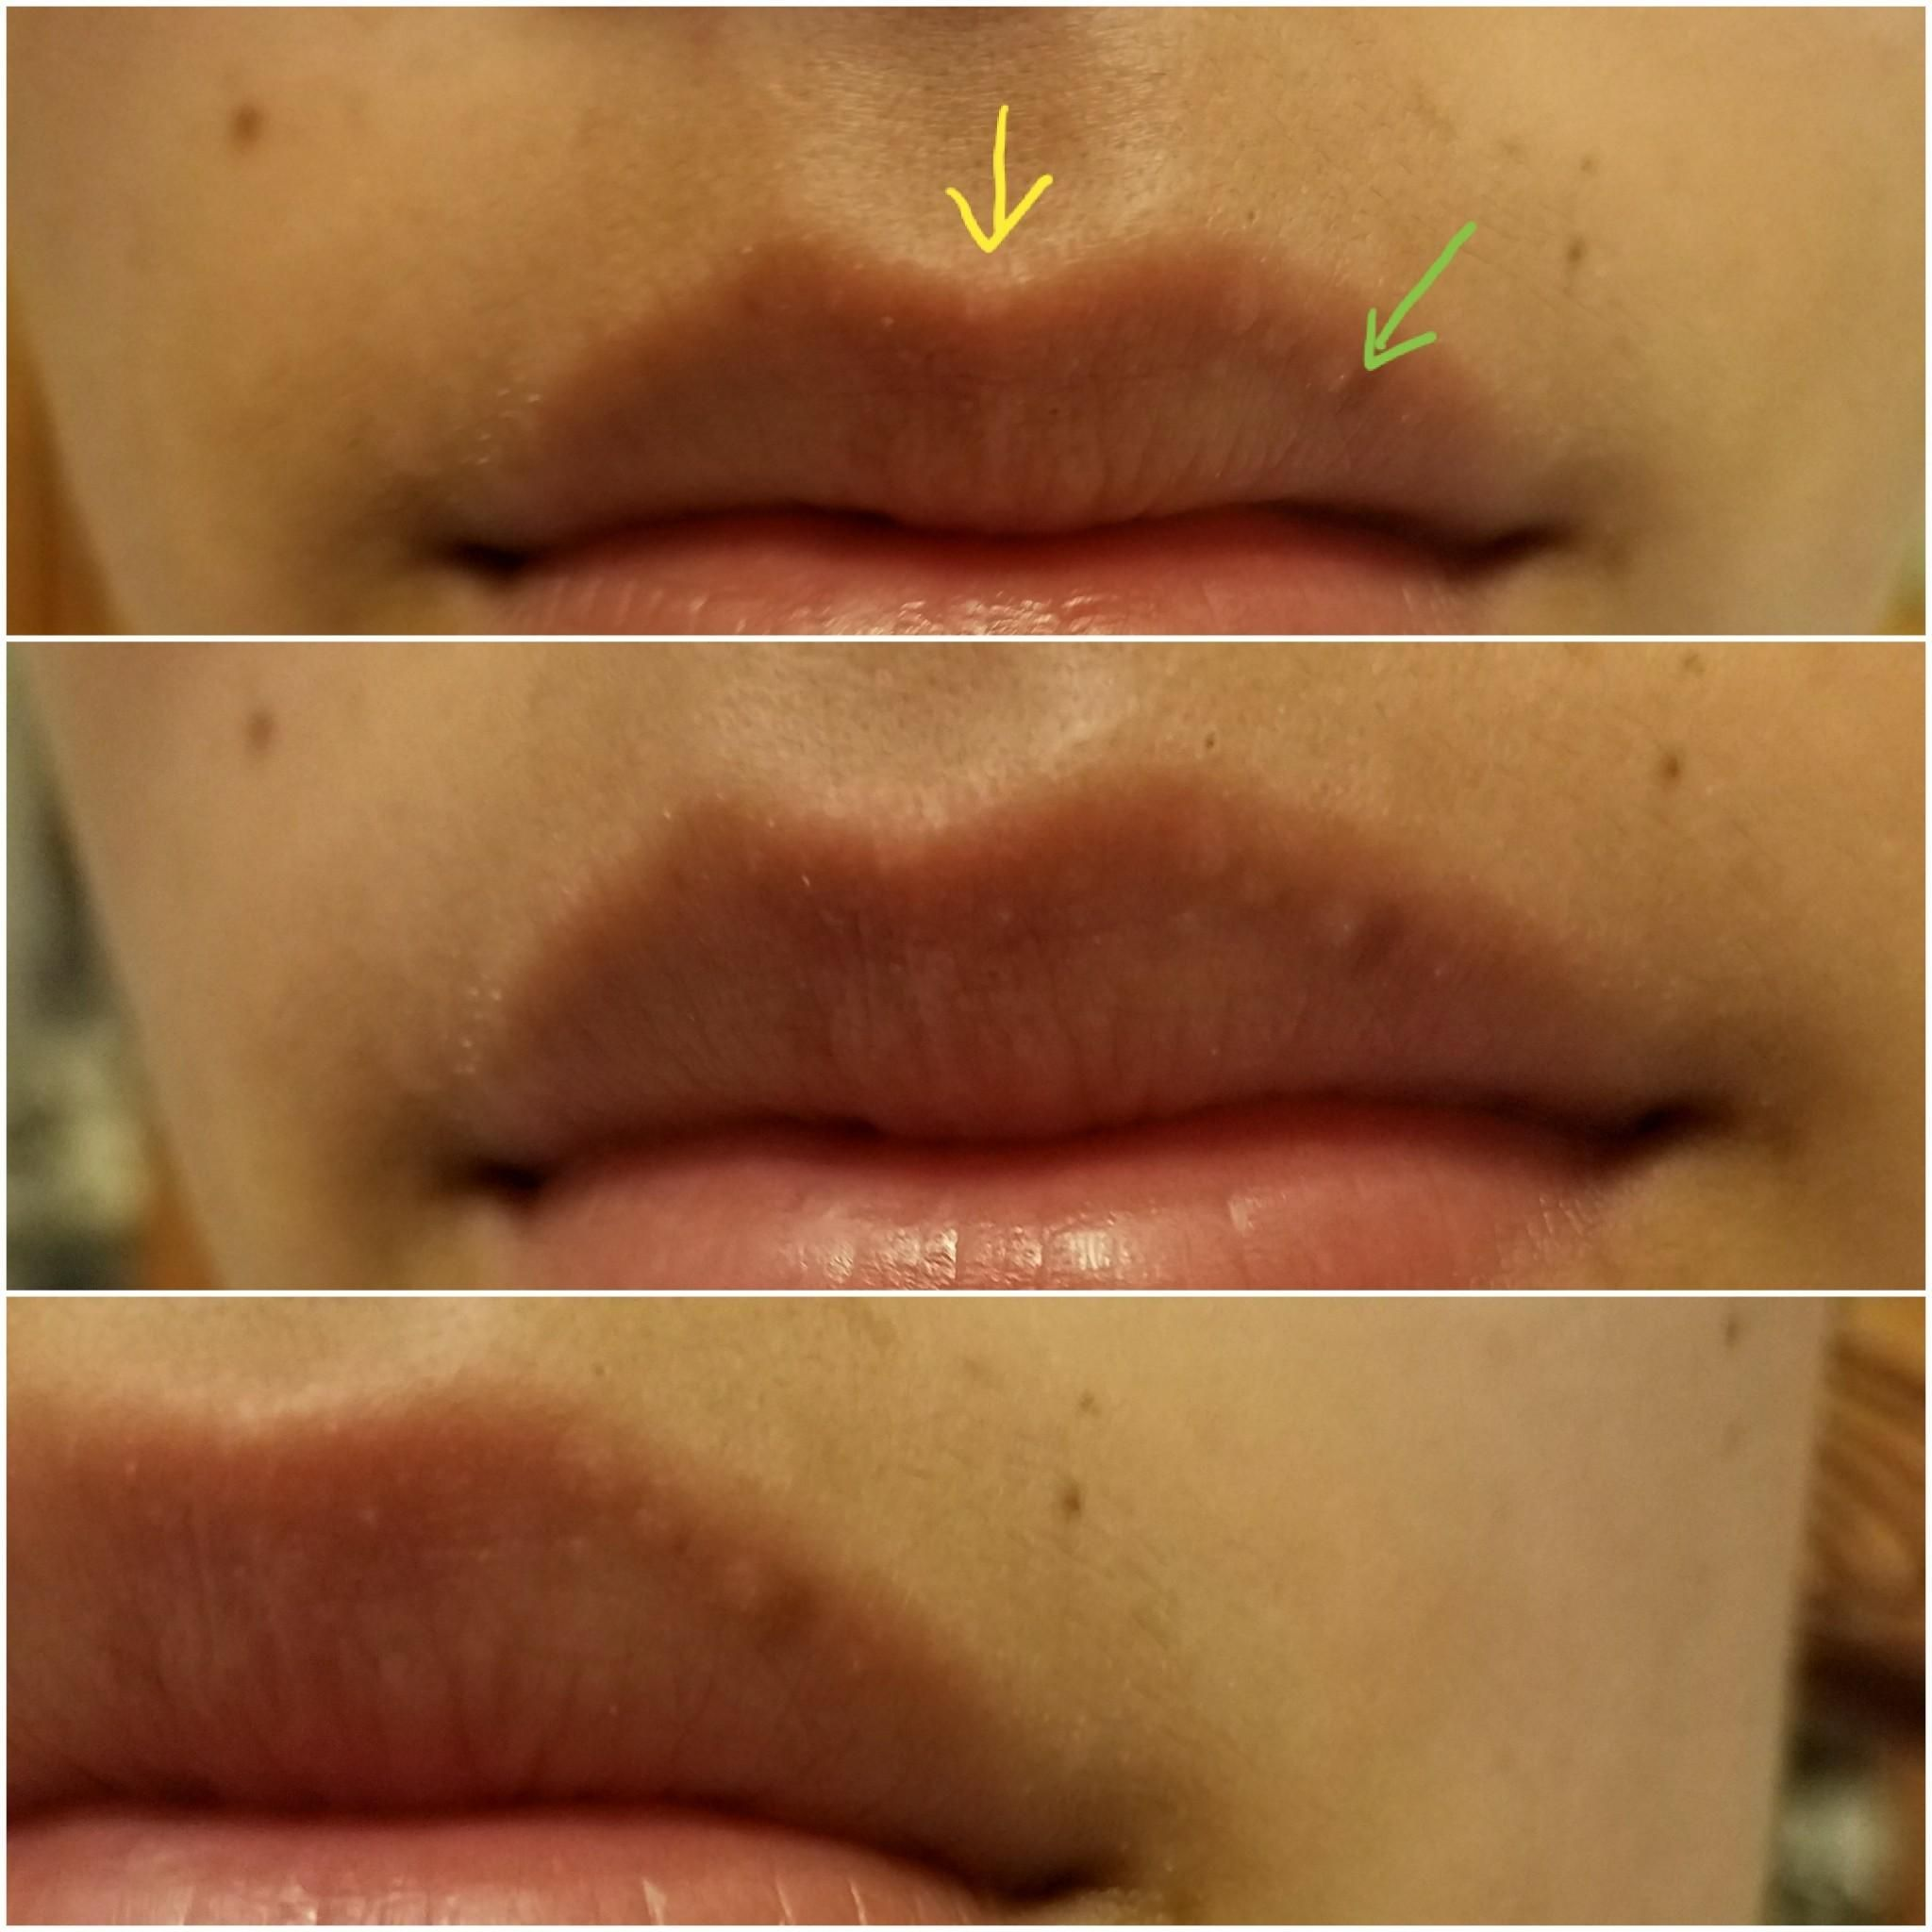 Skin Concerns Anyone Out There With Similar Bumps On Their Lips